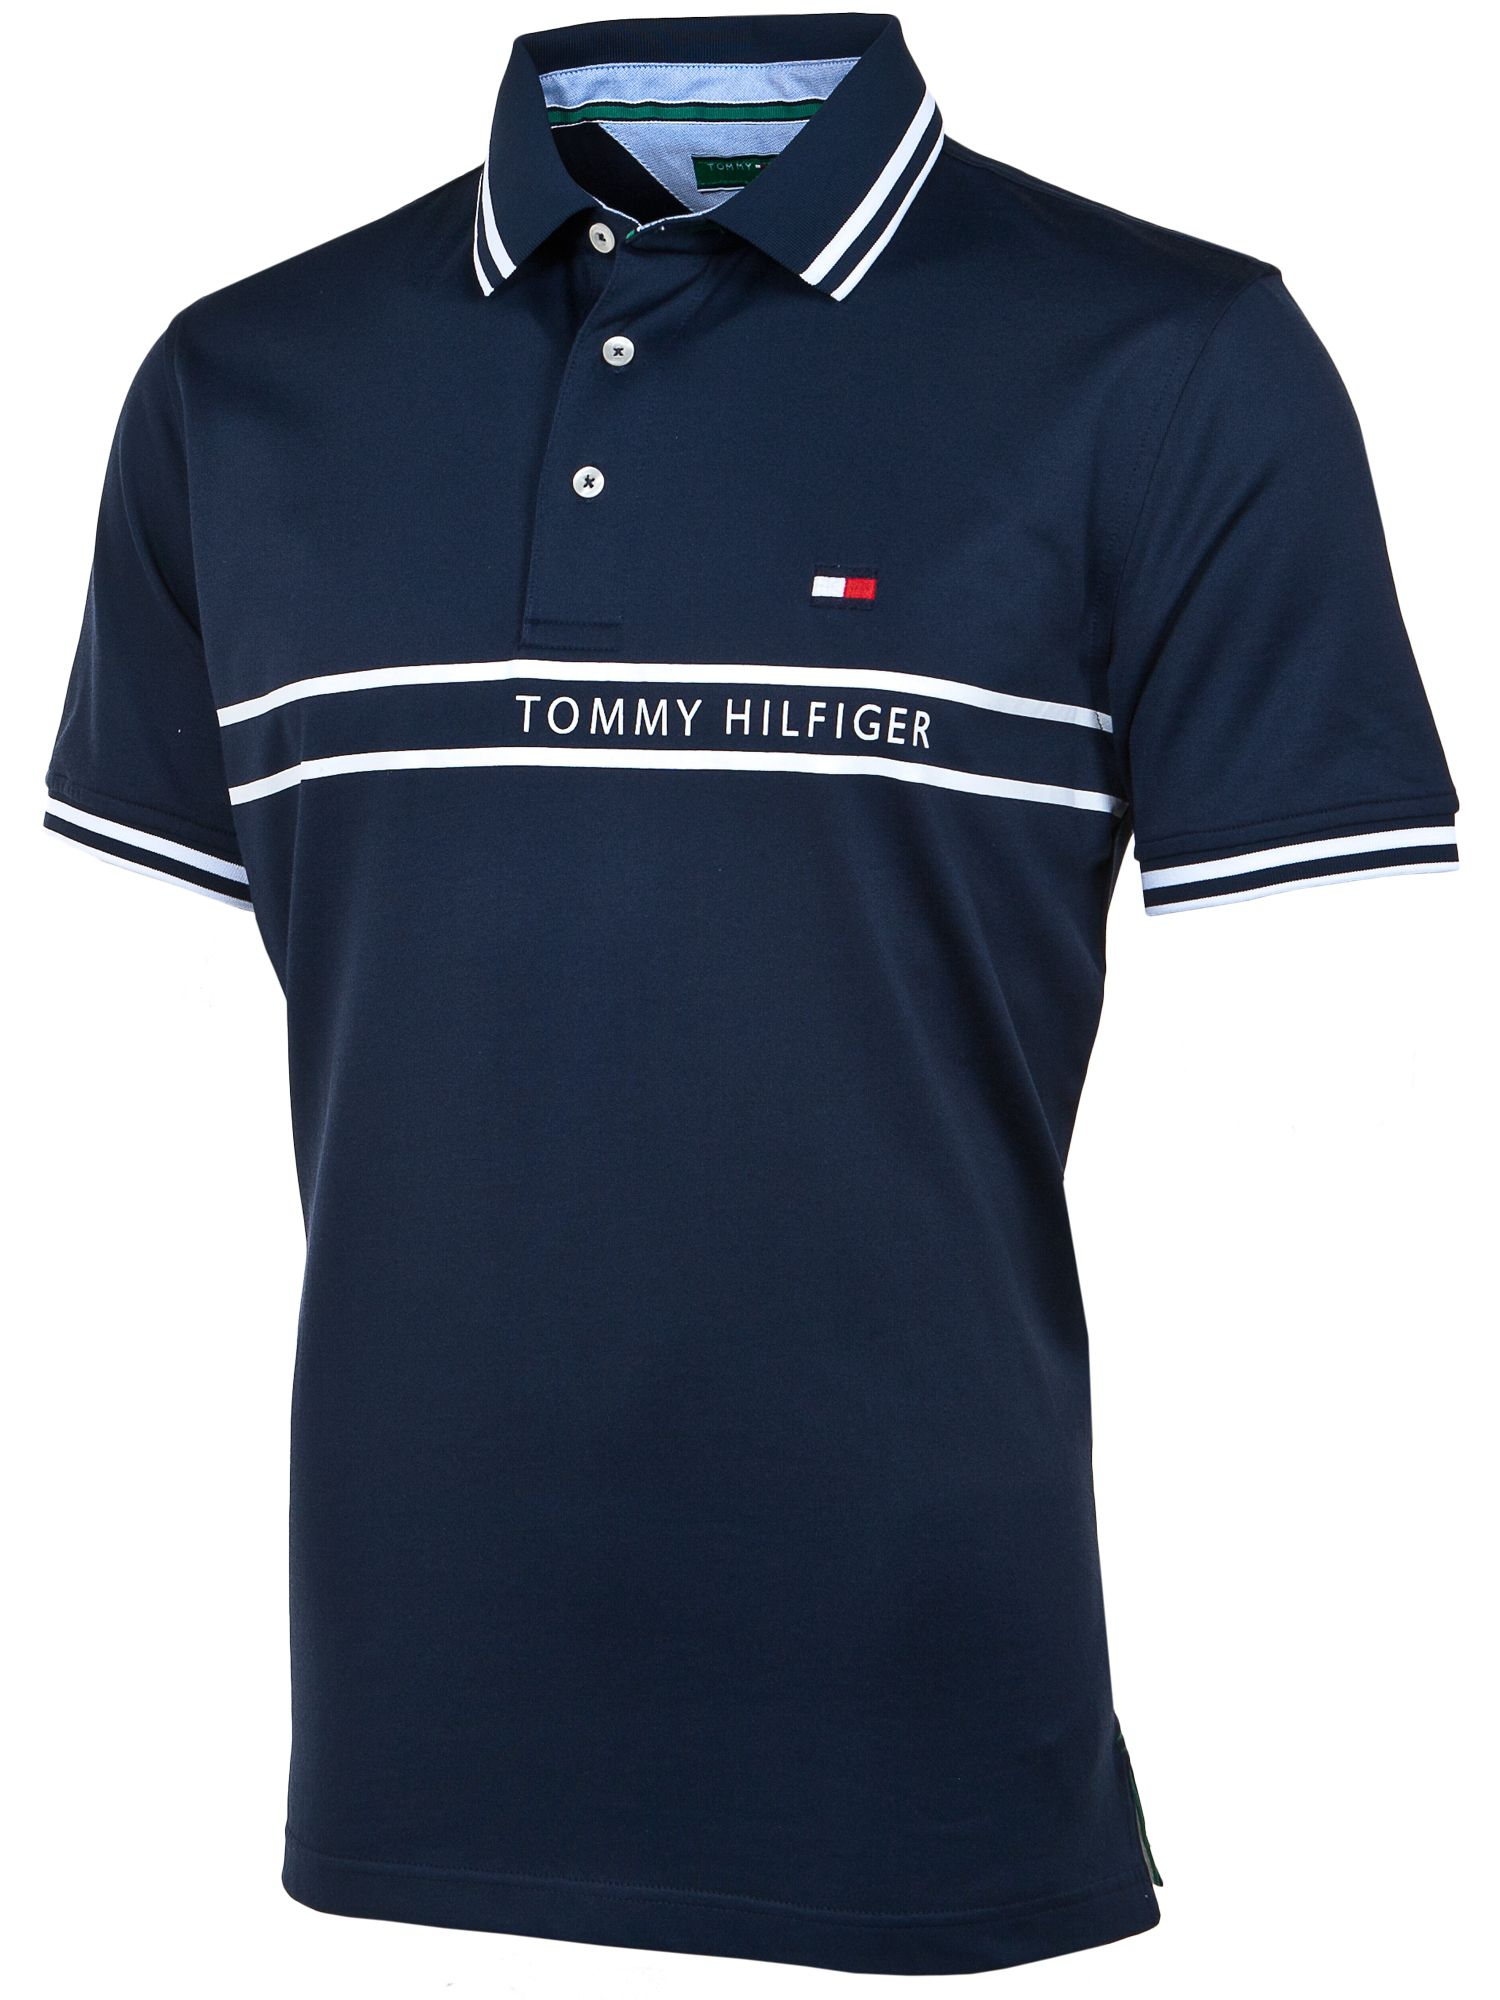 Tournament polo